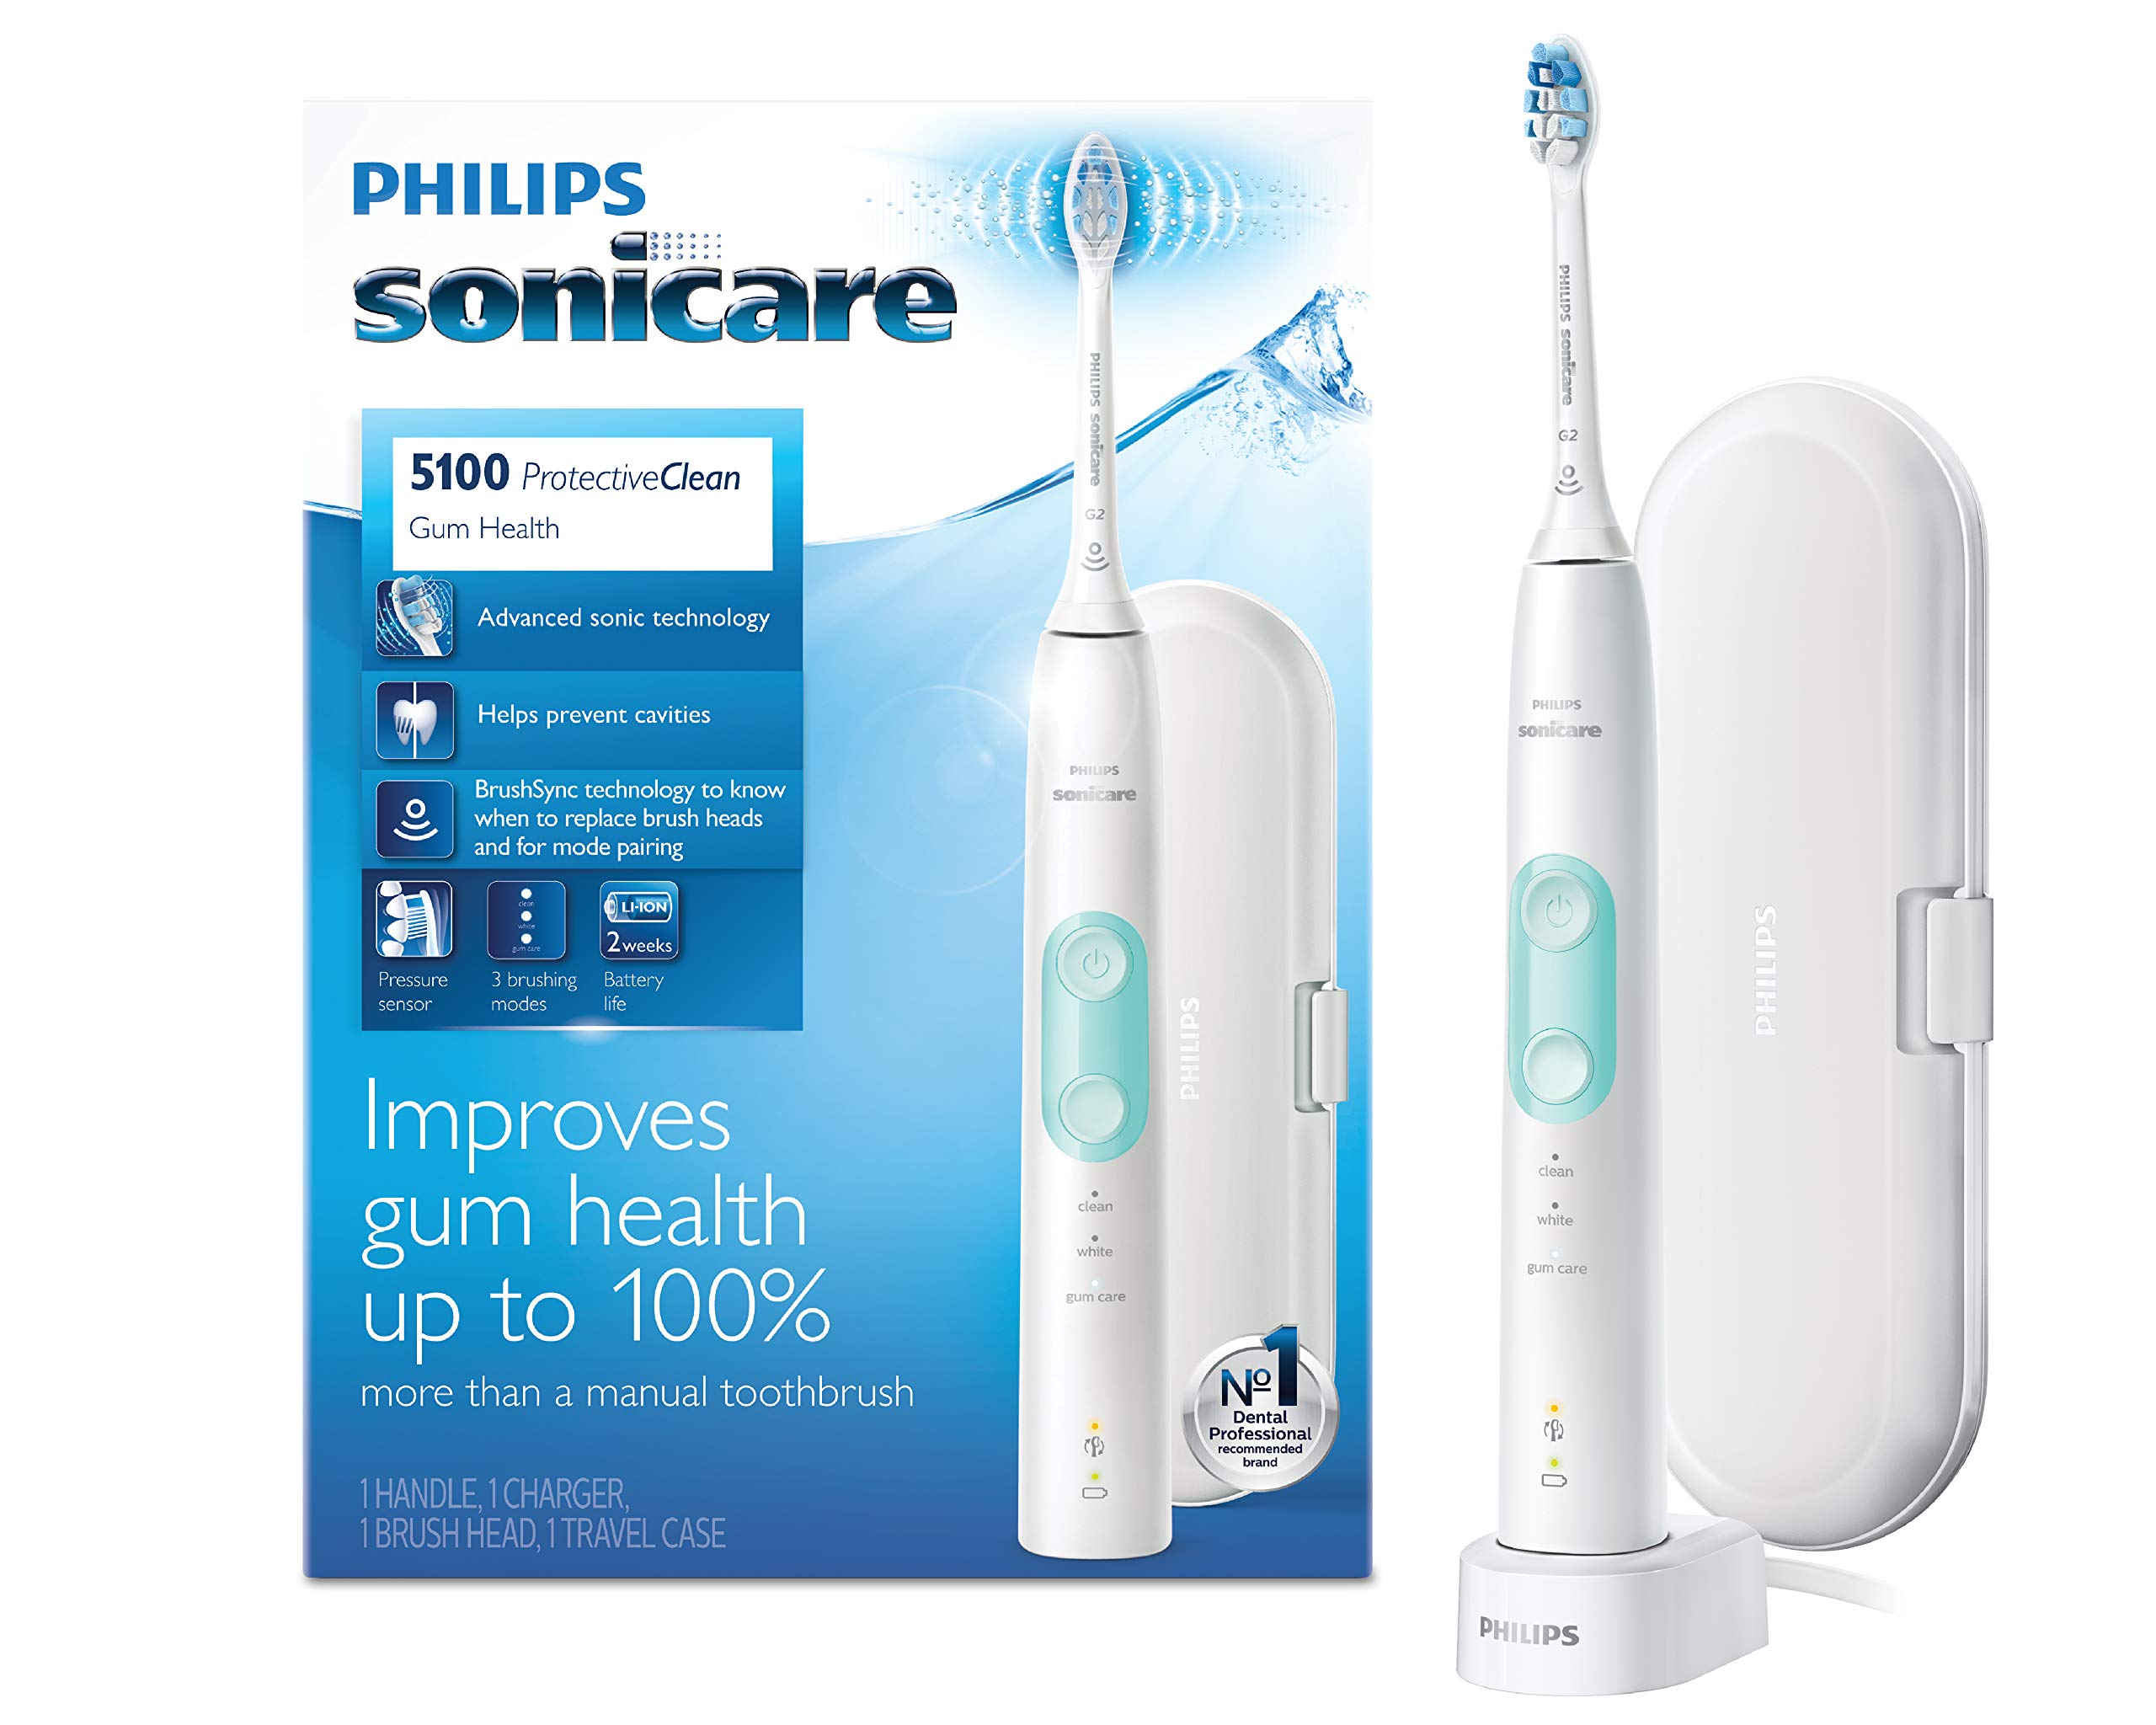 Philips Sonicare ProtectiveClean 5100 Rechargeable Electric Toothbrush, White HX6857/11 by Philips Sonicare